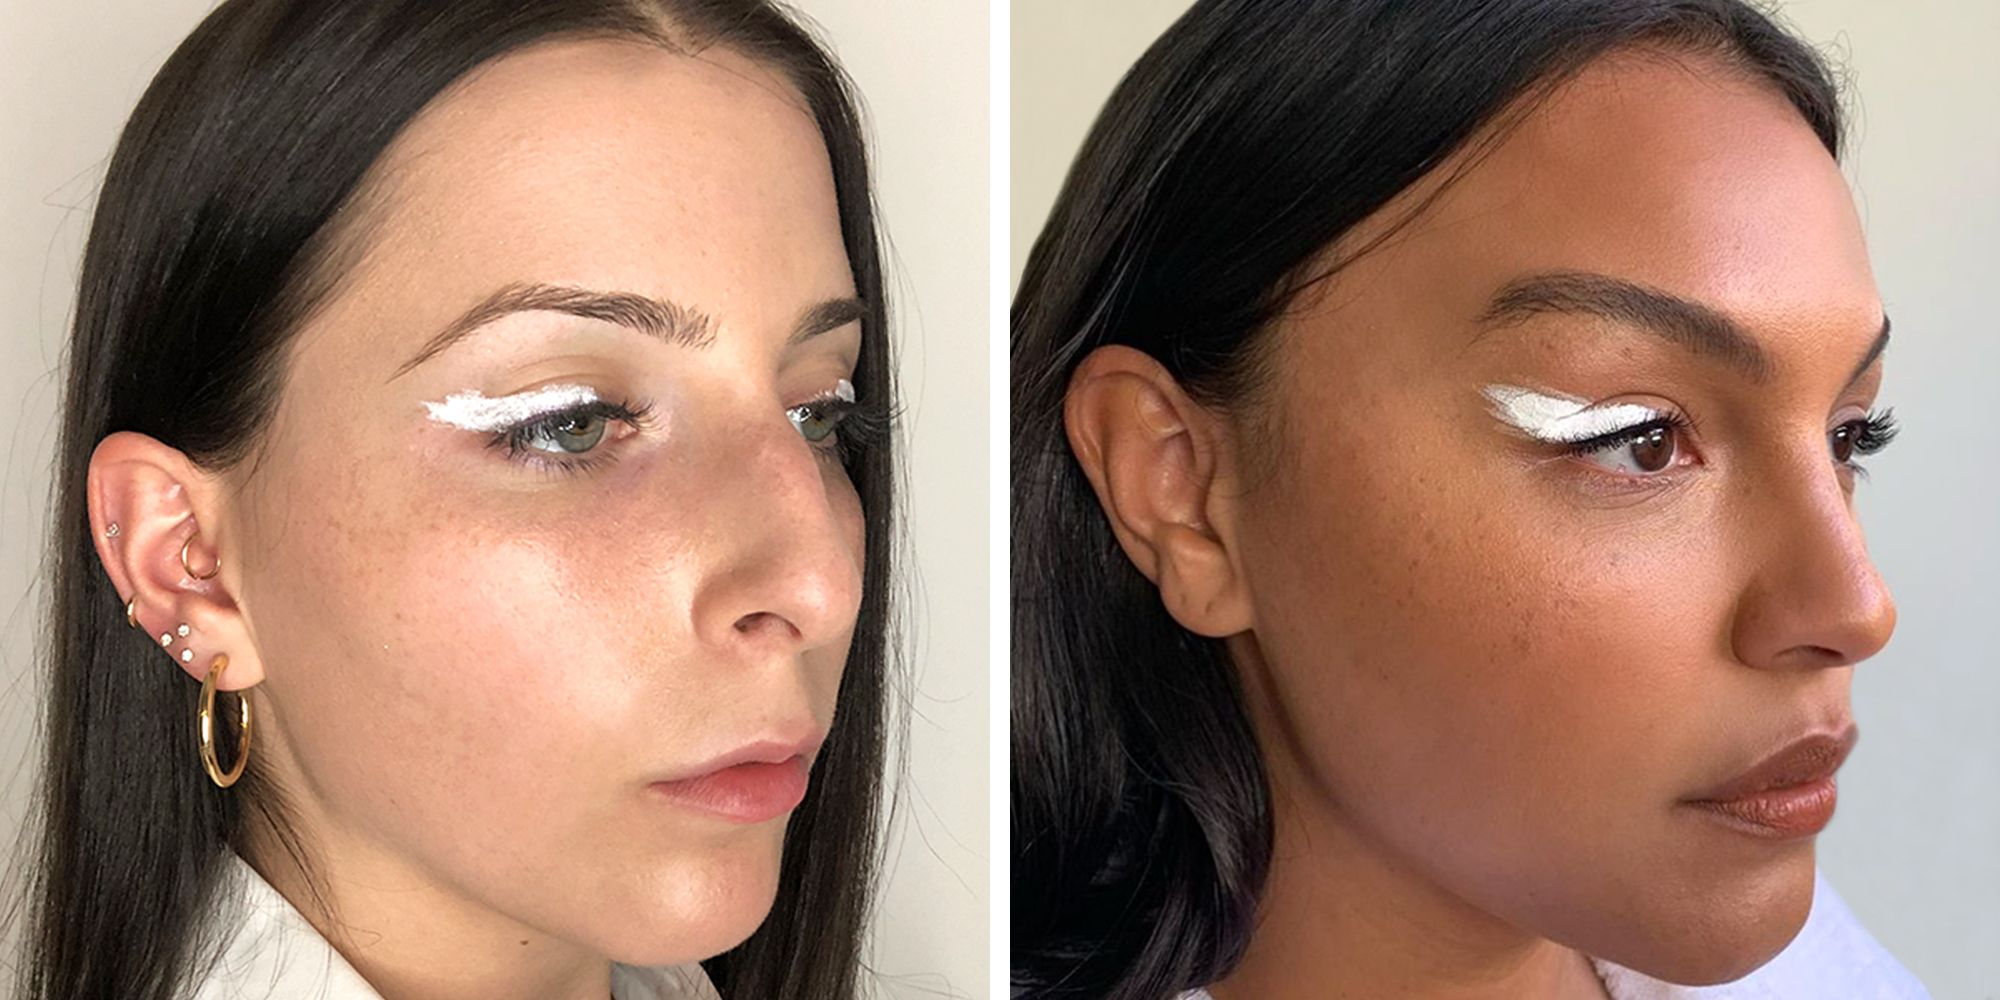 The Top Spring Makeup Trends for 2020